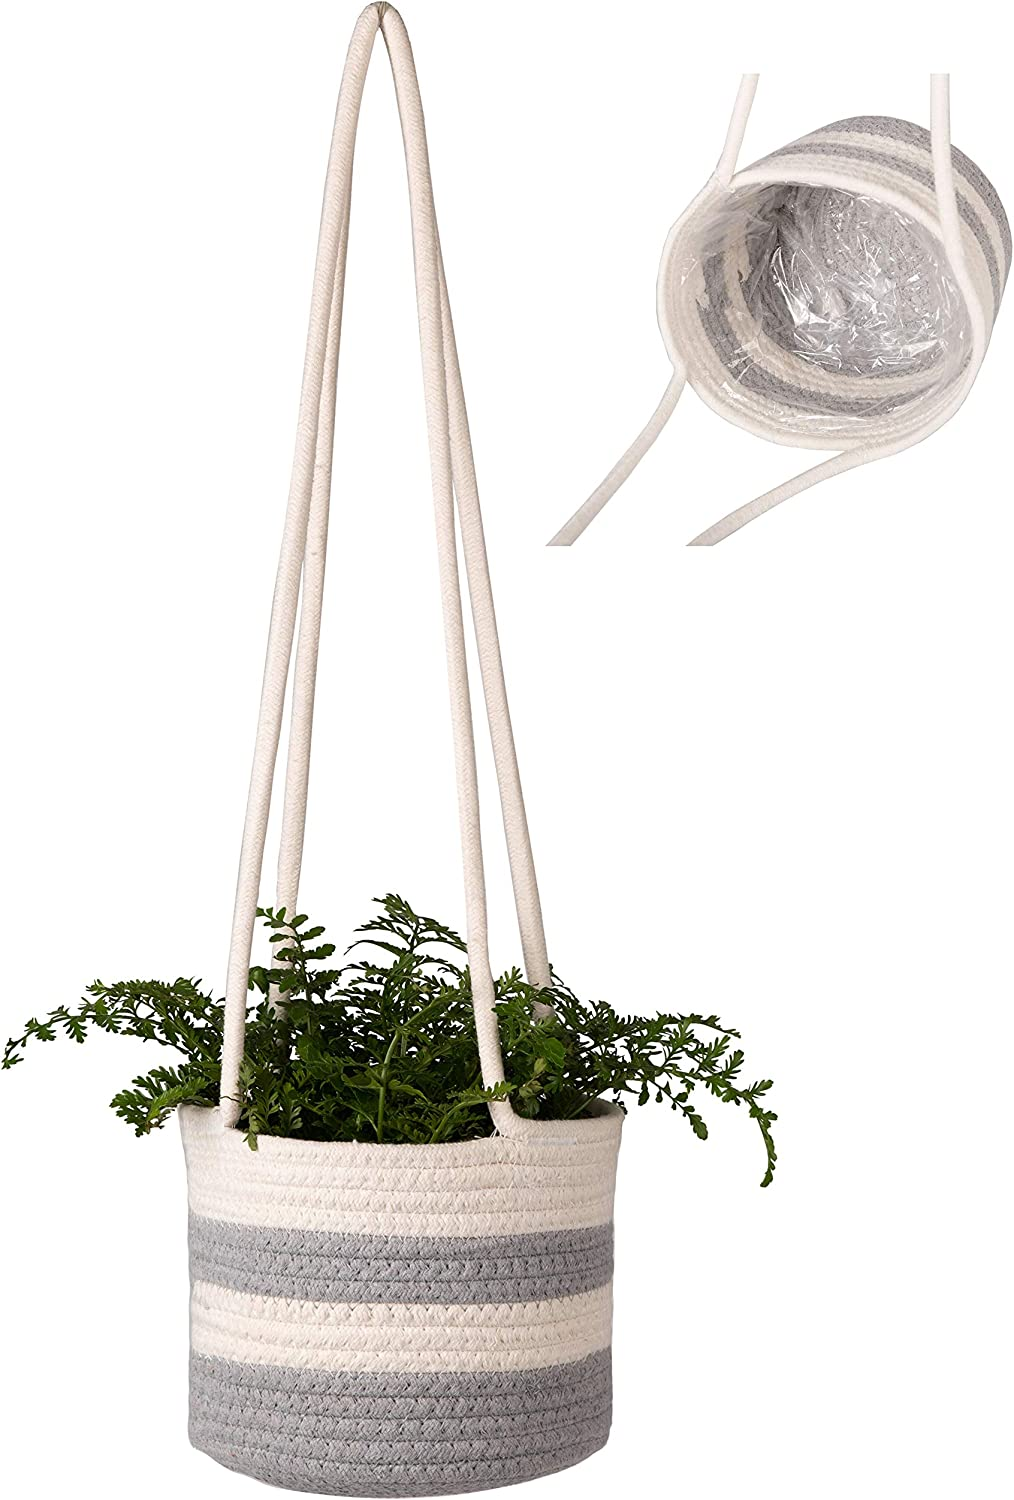 Abetree Hanging Planter Baskets Quantity limited Natural Cotton 5 ☆ very popular Woven Plant Hand